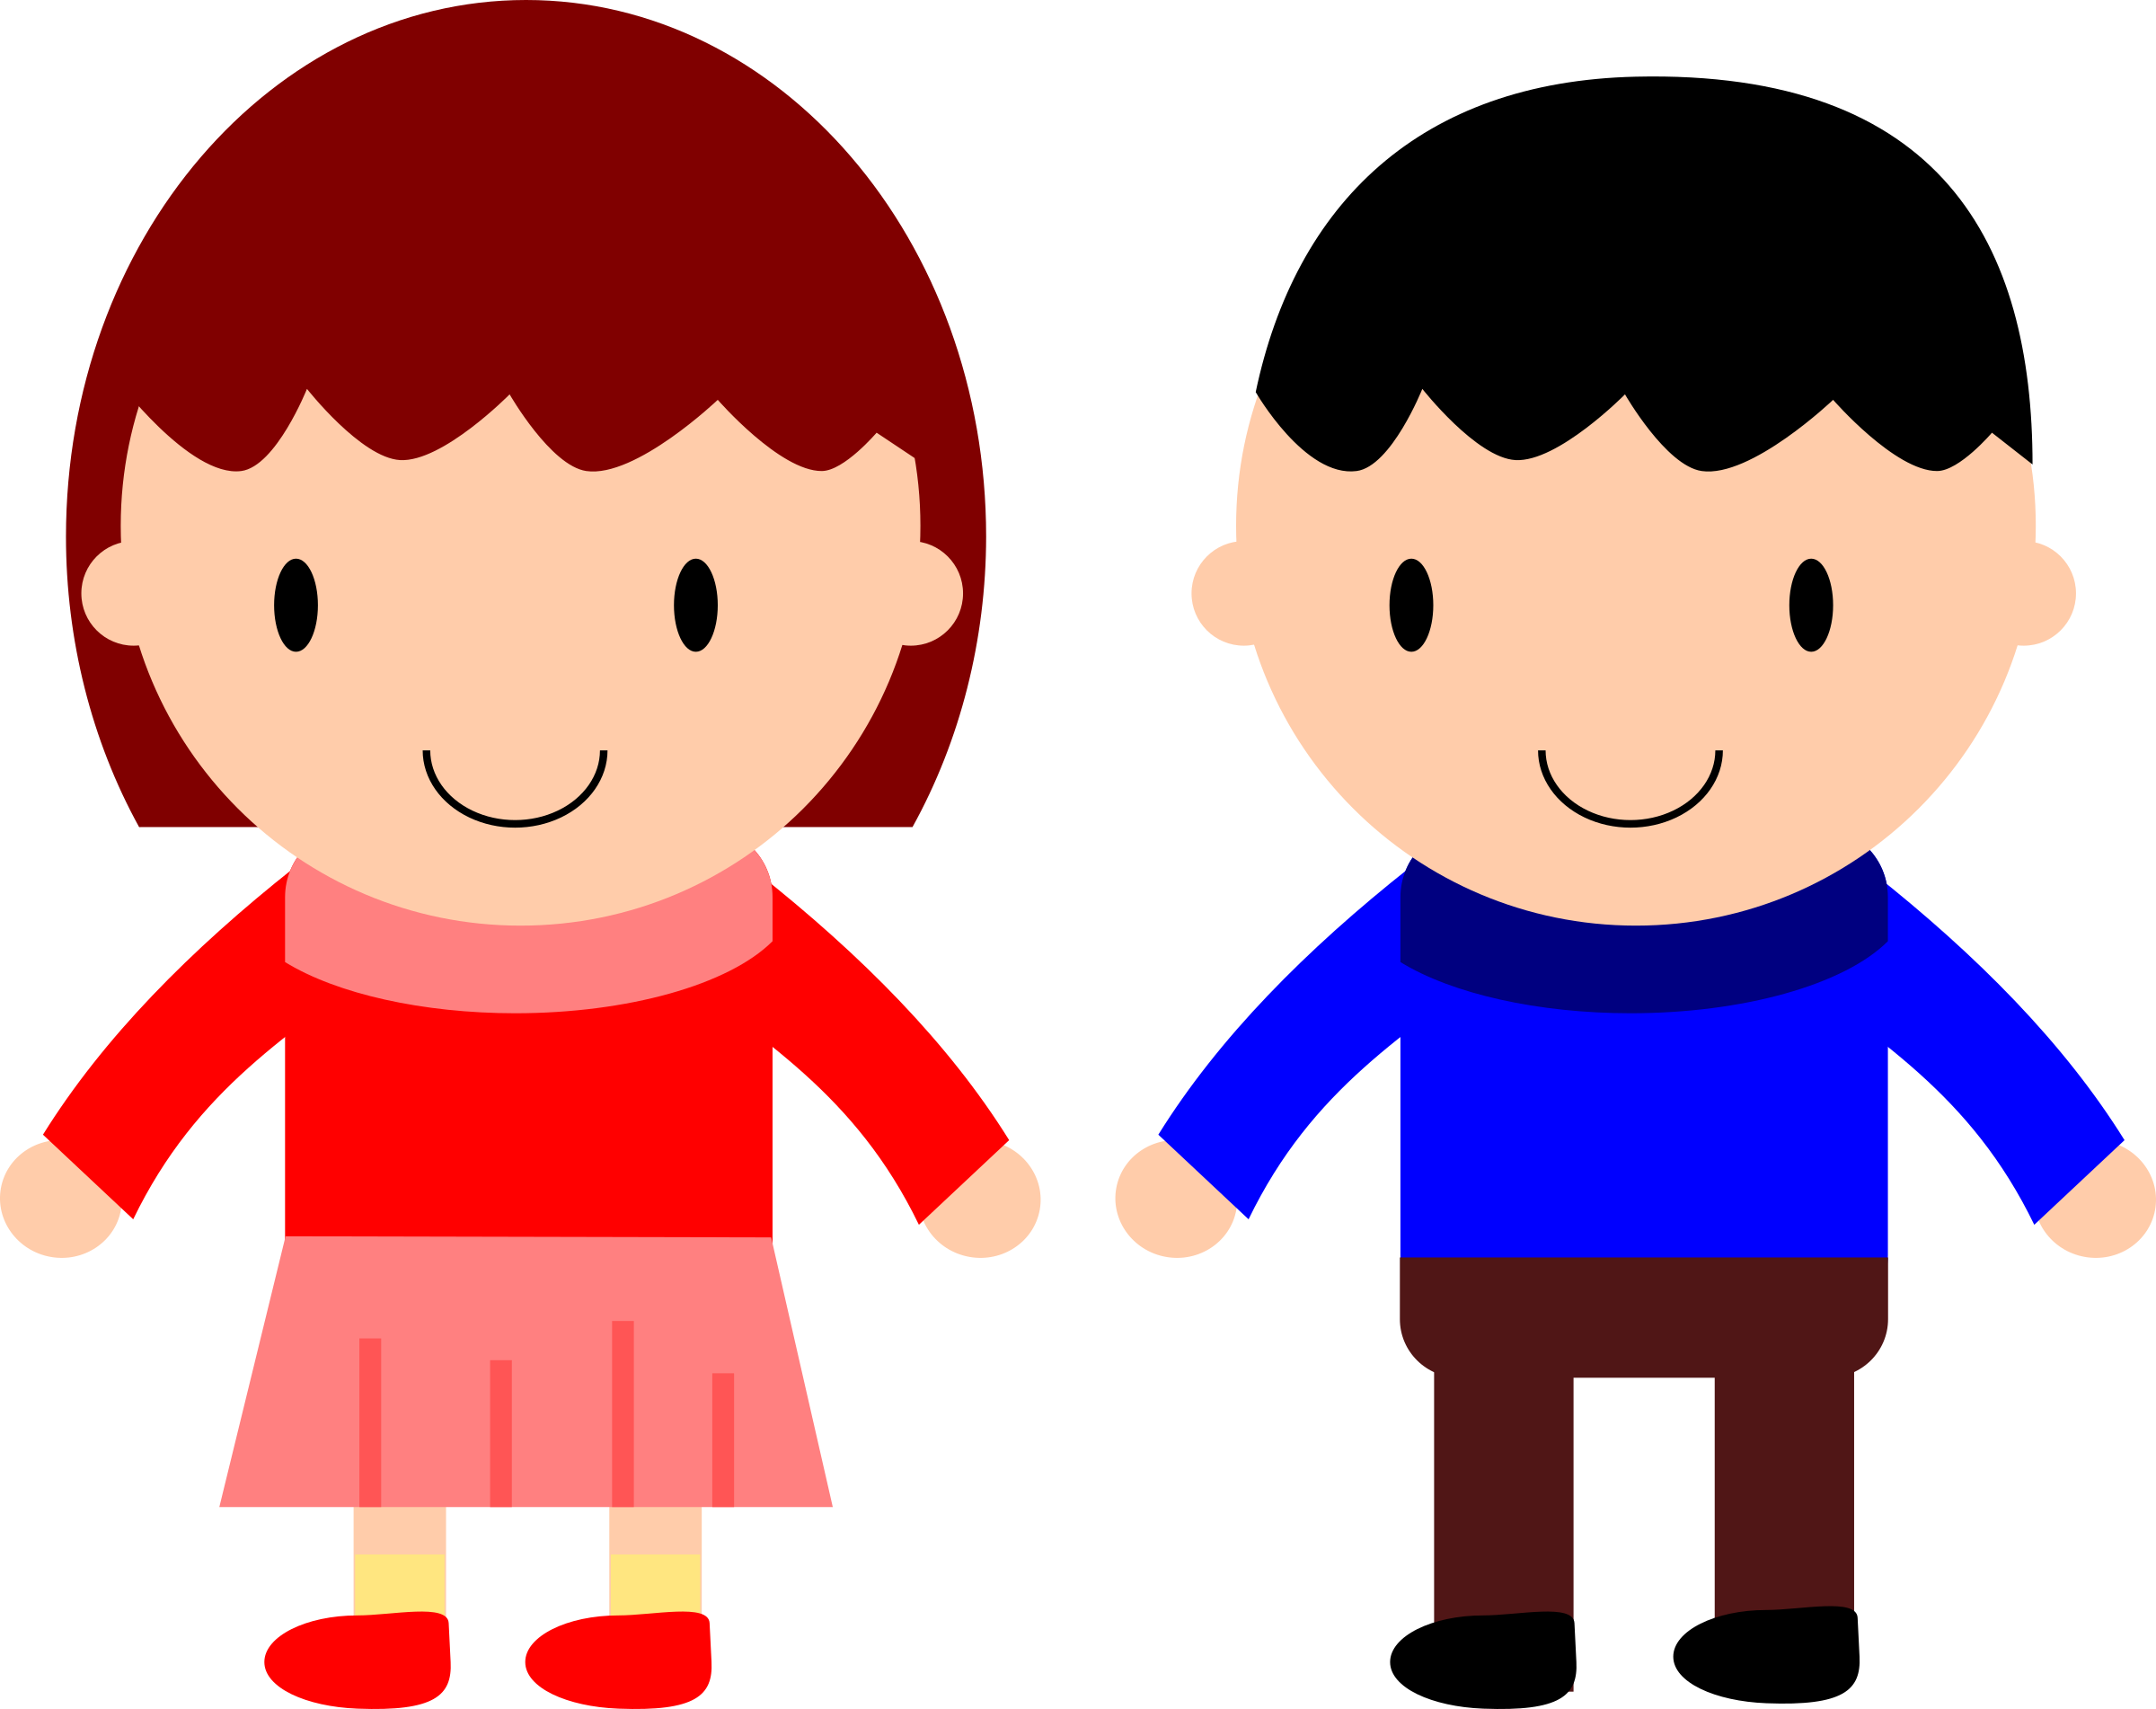 Happy boy and girl clipart image freeuse stock Free Boy And Girl Clipart, Download Free Clip Art, Free Clip Art on ... image freeuse stock